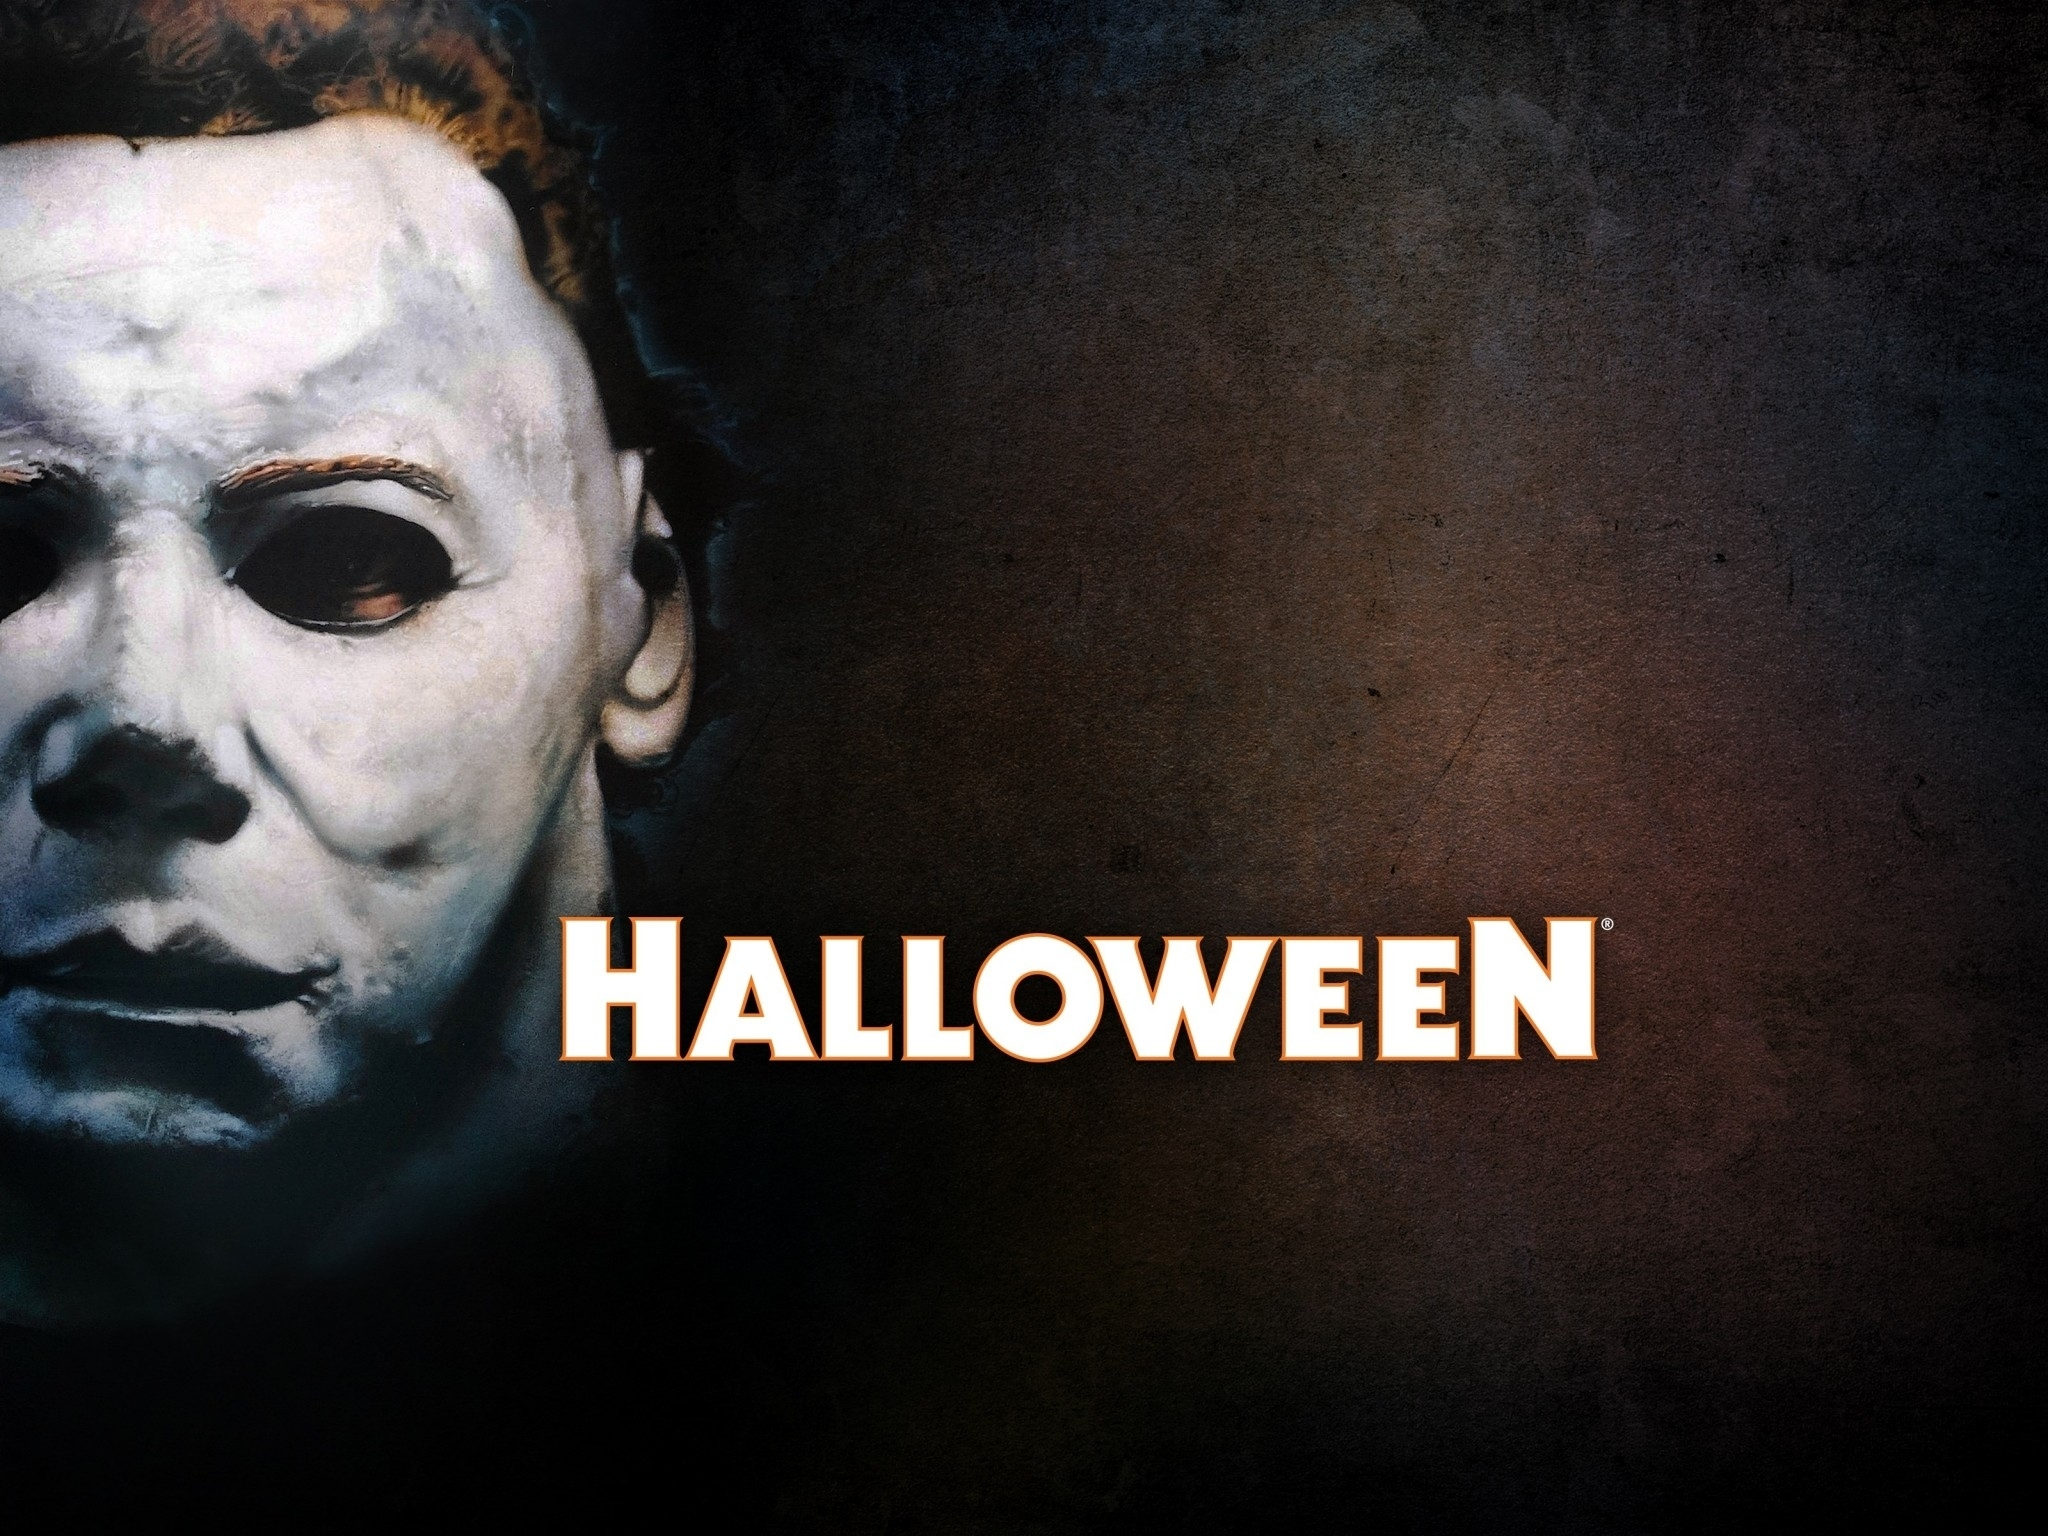 hd michael myers halloween wallpaper (70+ images)